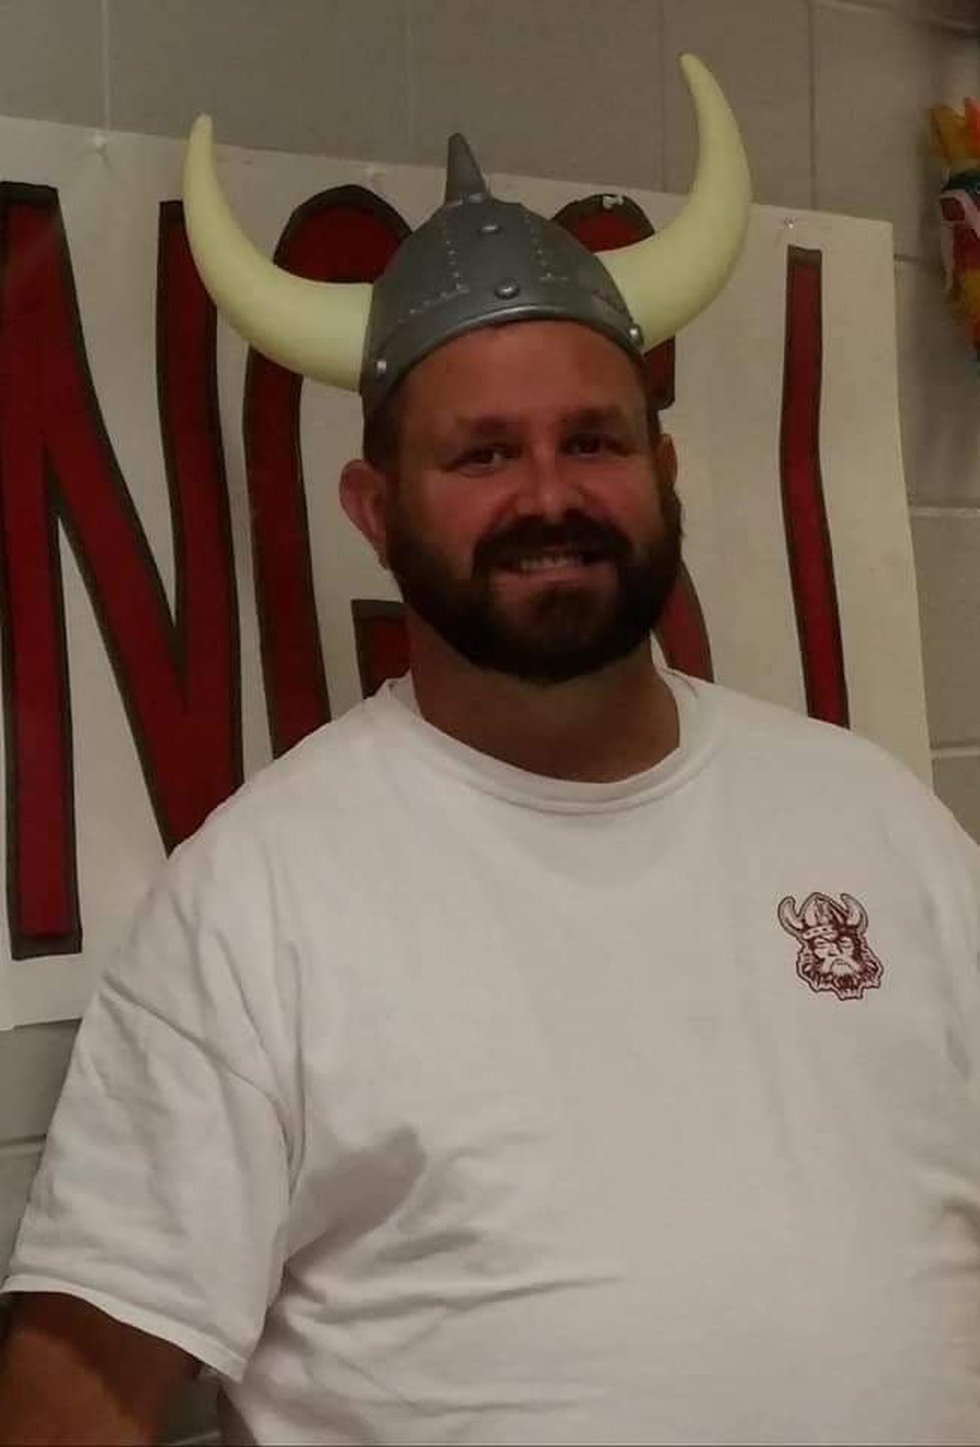 Brian Mainor passed away Aug. 18 from COVID-19, he was a Lowndes County teacher.